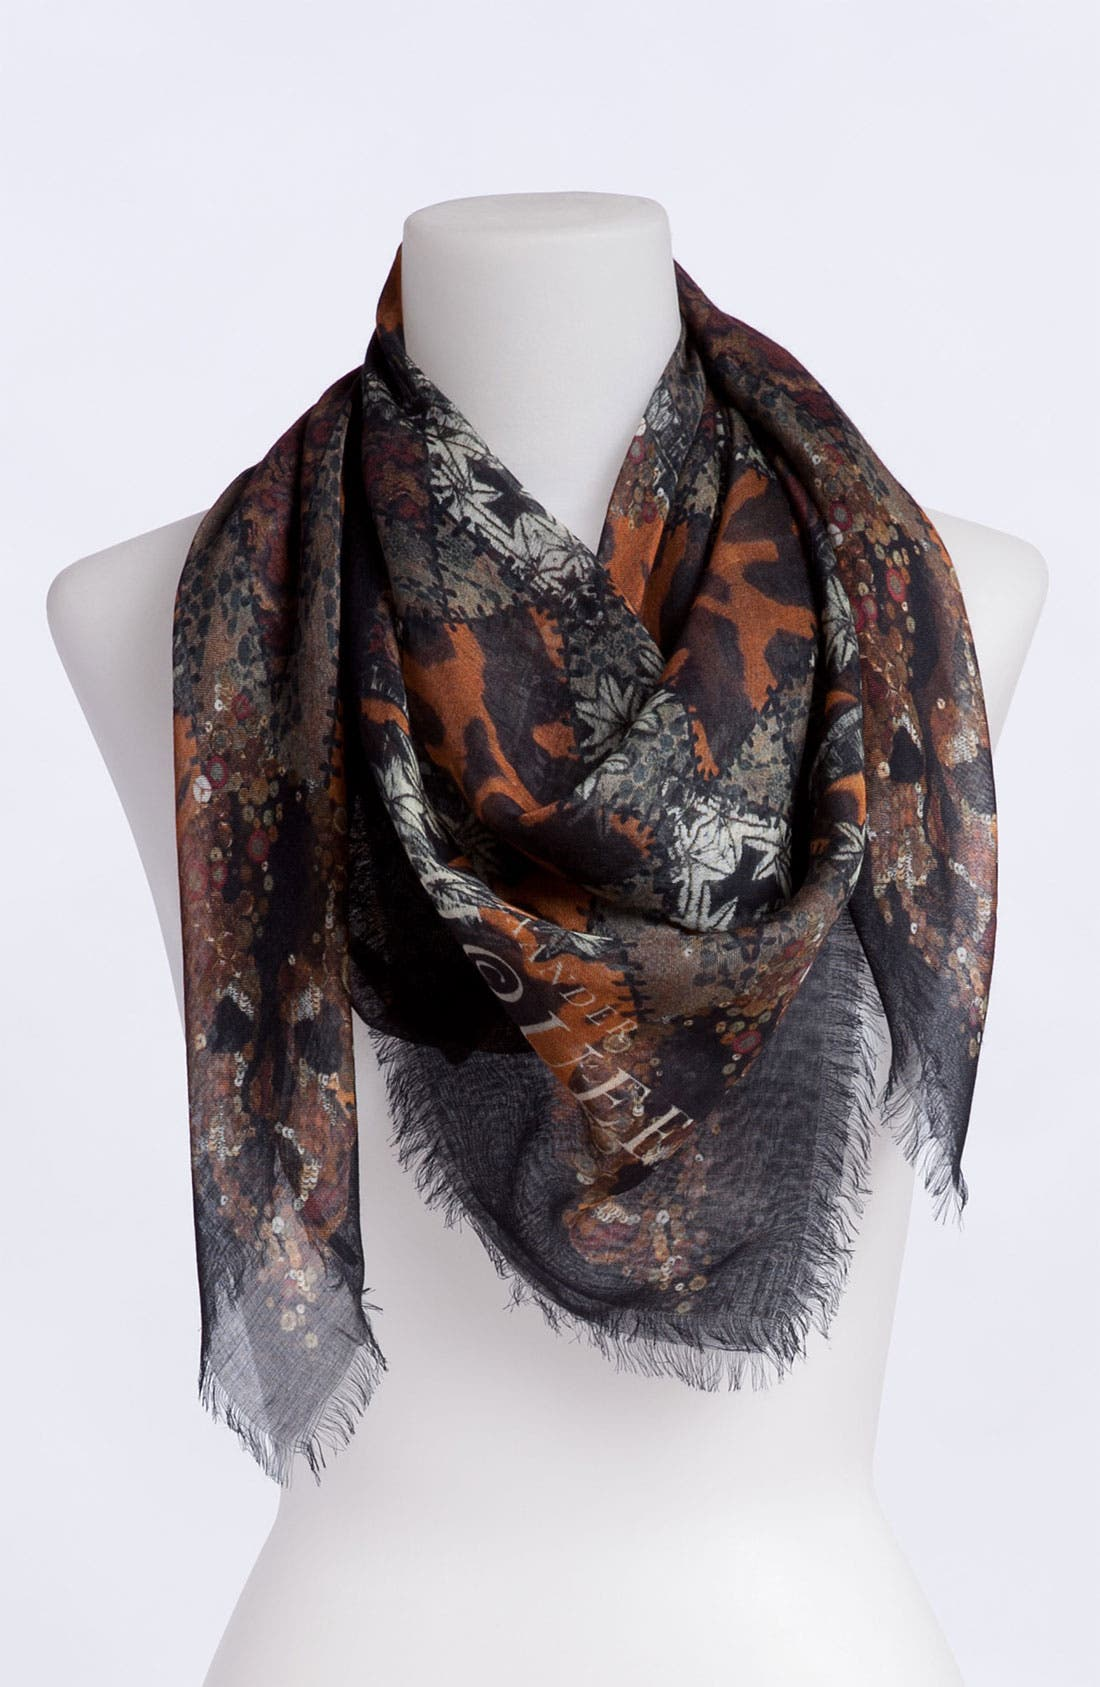 Alternate Image 1 Selected - Alexander McQueen 'God Save McQueen' Patchwork Pashmina